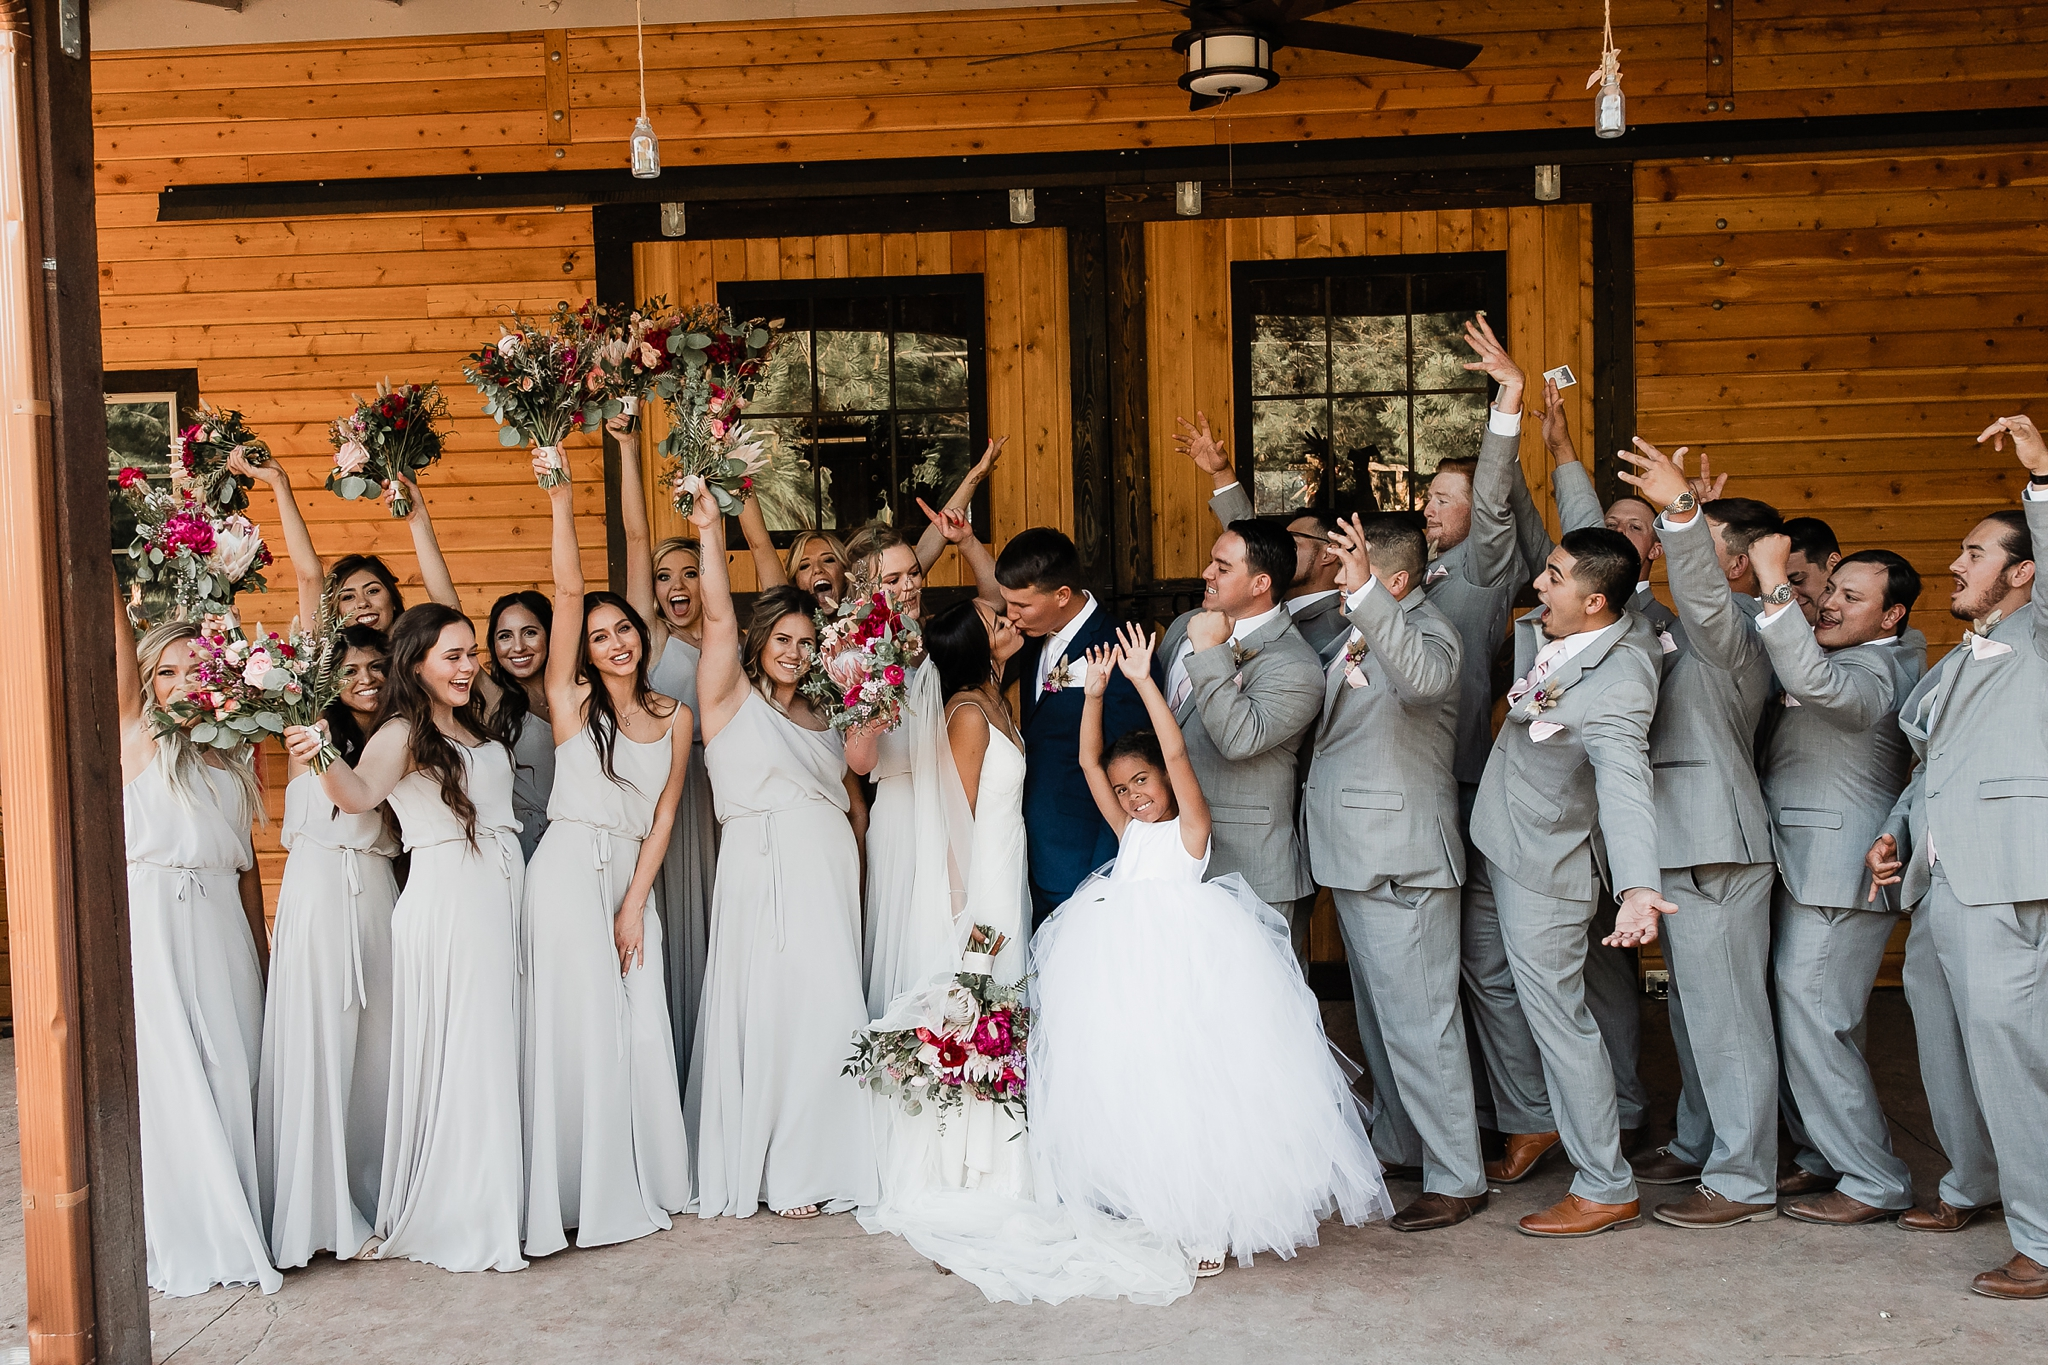 Alicia+lucia+photography+-+albuquerque+wedding+photographer+-+santa+fe+wedding+photography+-+new+mexico+wedding+photographer+-+new+mexico+wedding+-+new+mexico+wedding+-+barn+wedding+-+enchanted+vine+barn+wedding+-+ruidoso+wedding_0117.jpg